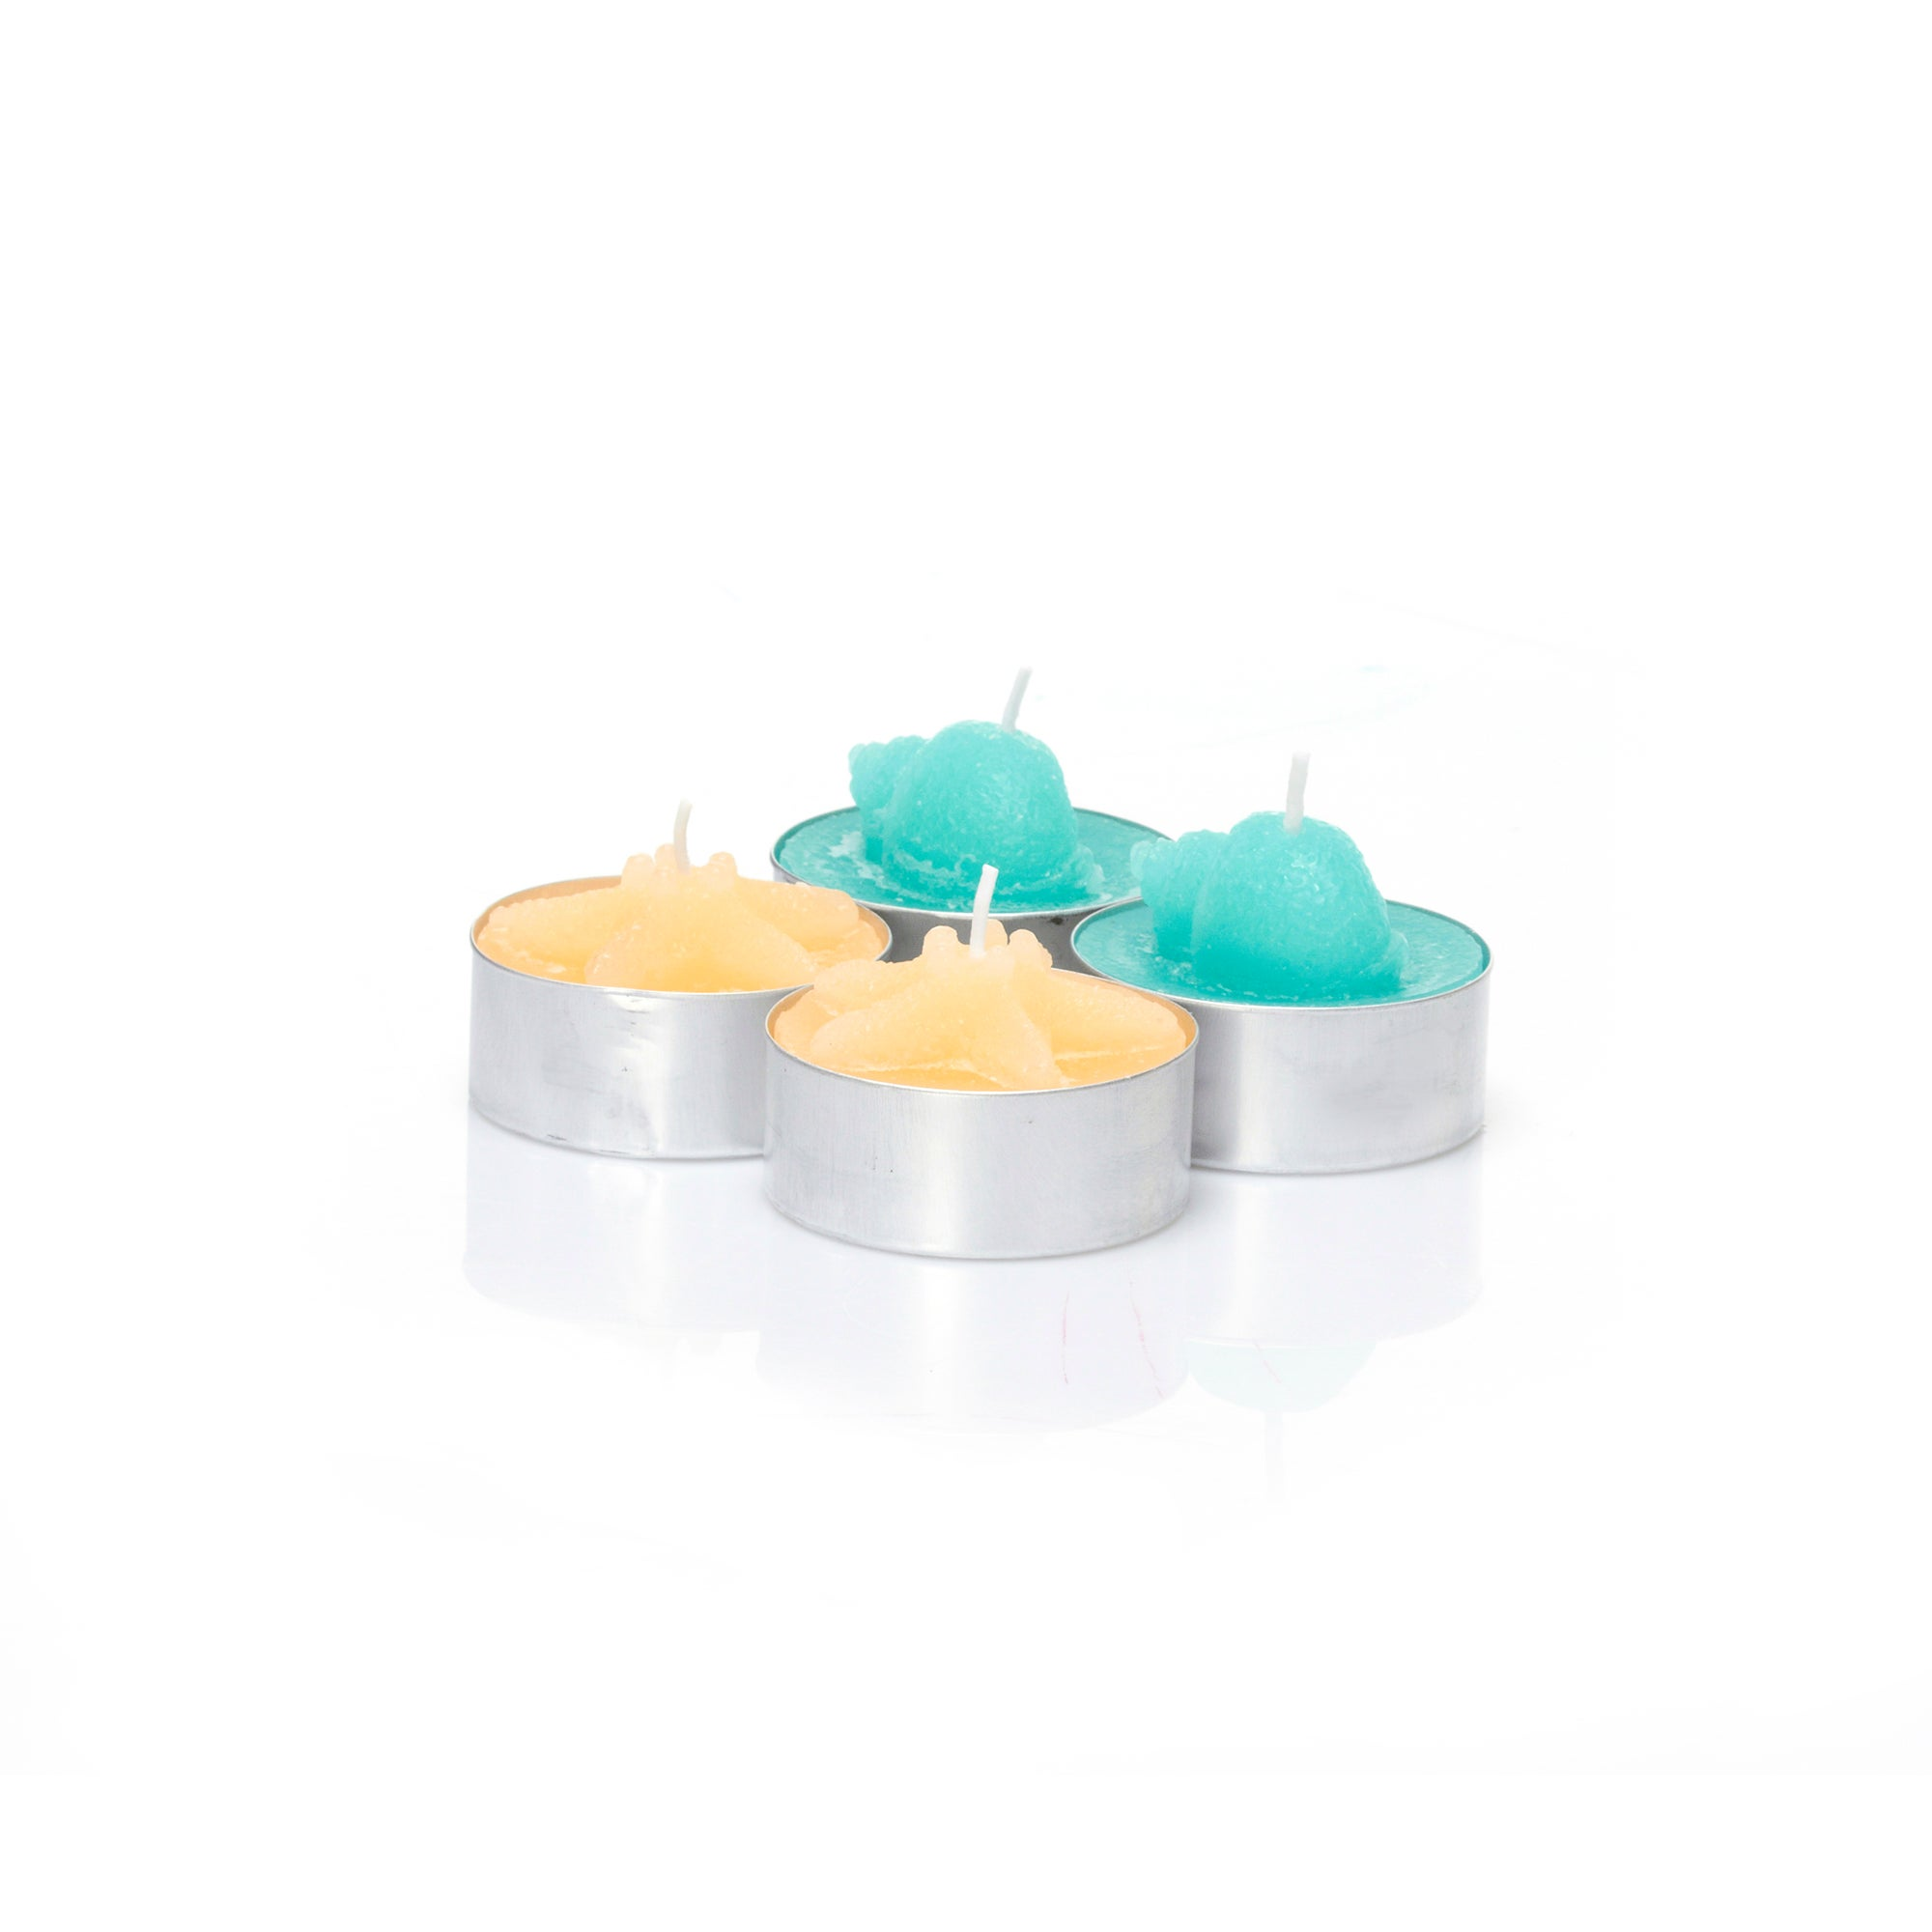 Coastal Collection Tealight Candles